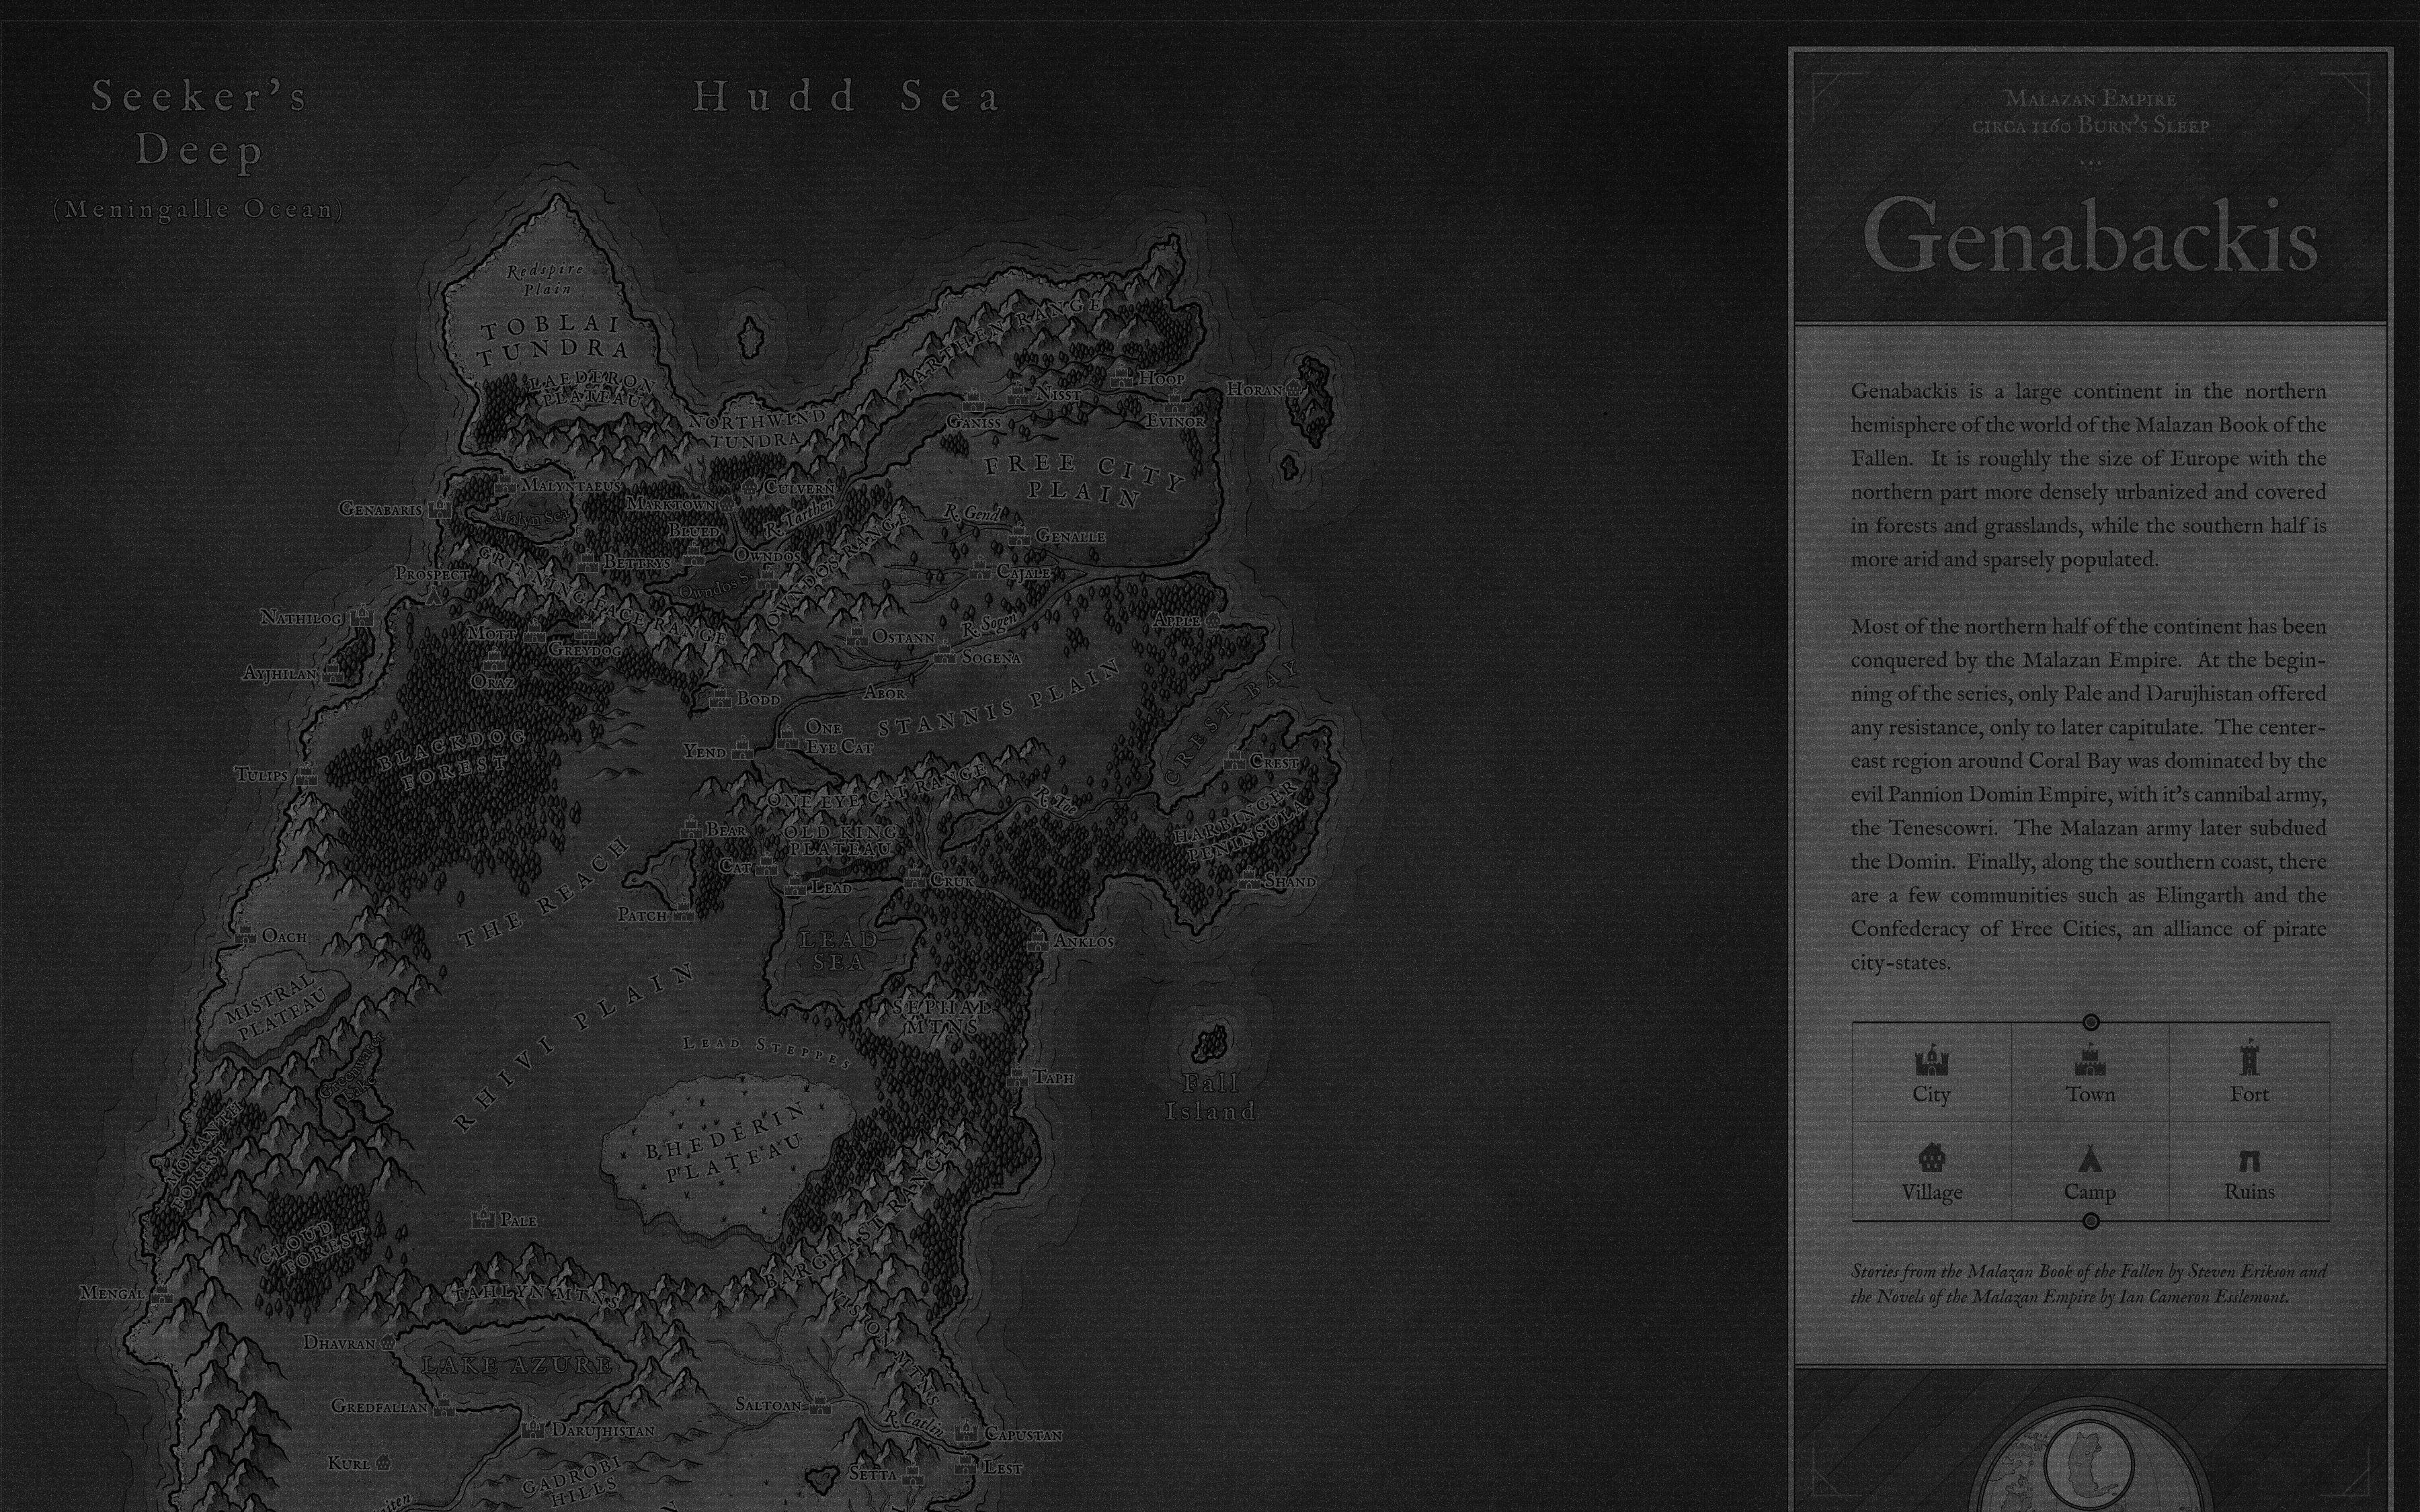 (Complete) Genabackis Map